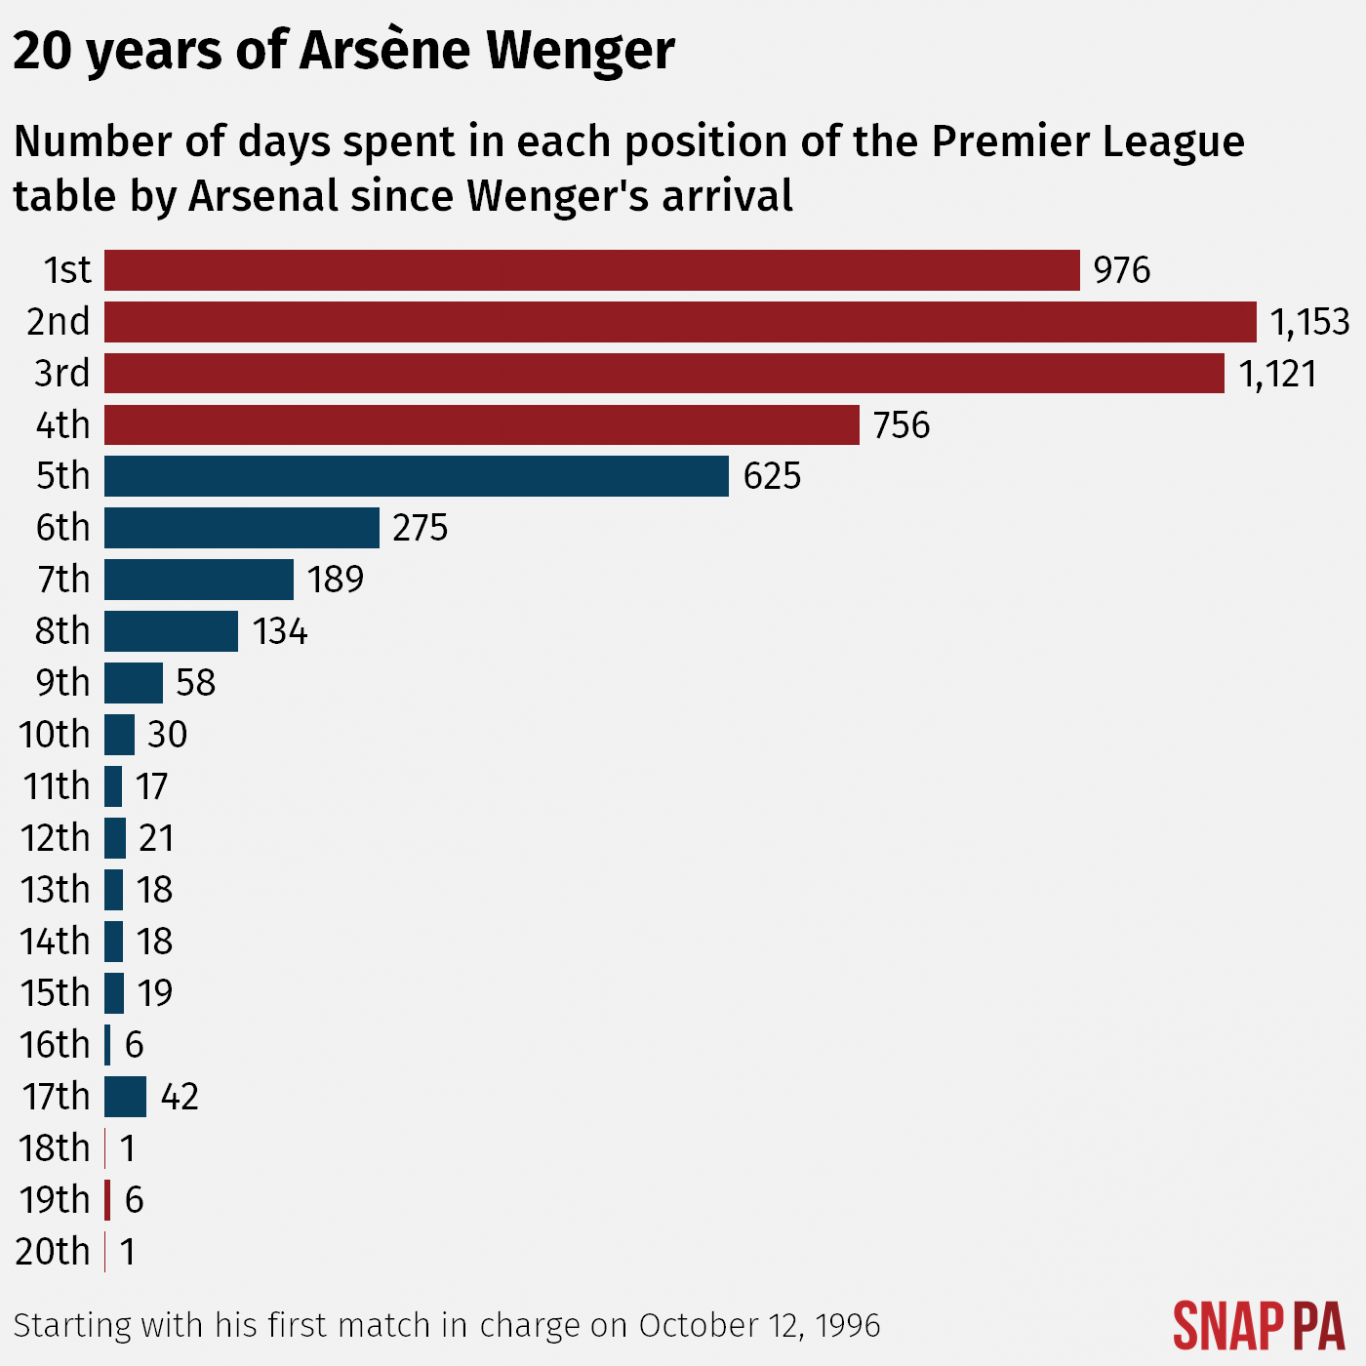 A graph depicting where Arsenal have sat in the Premier League under Arsene Wenger